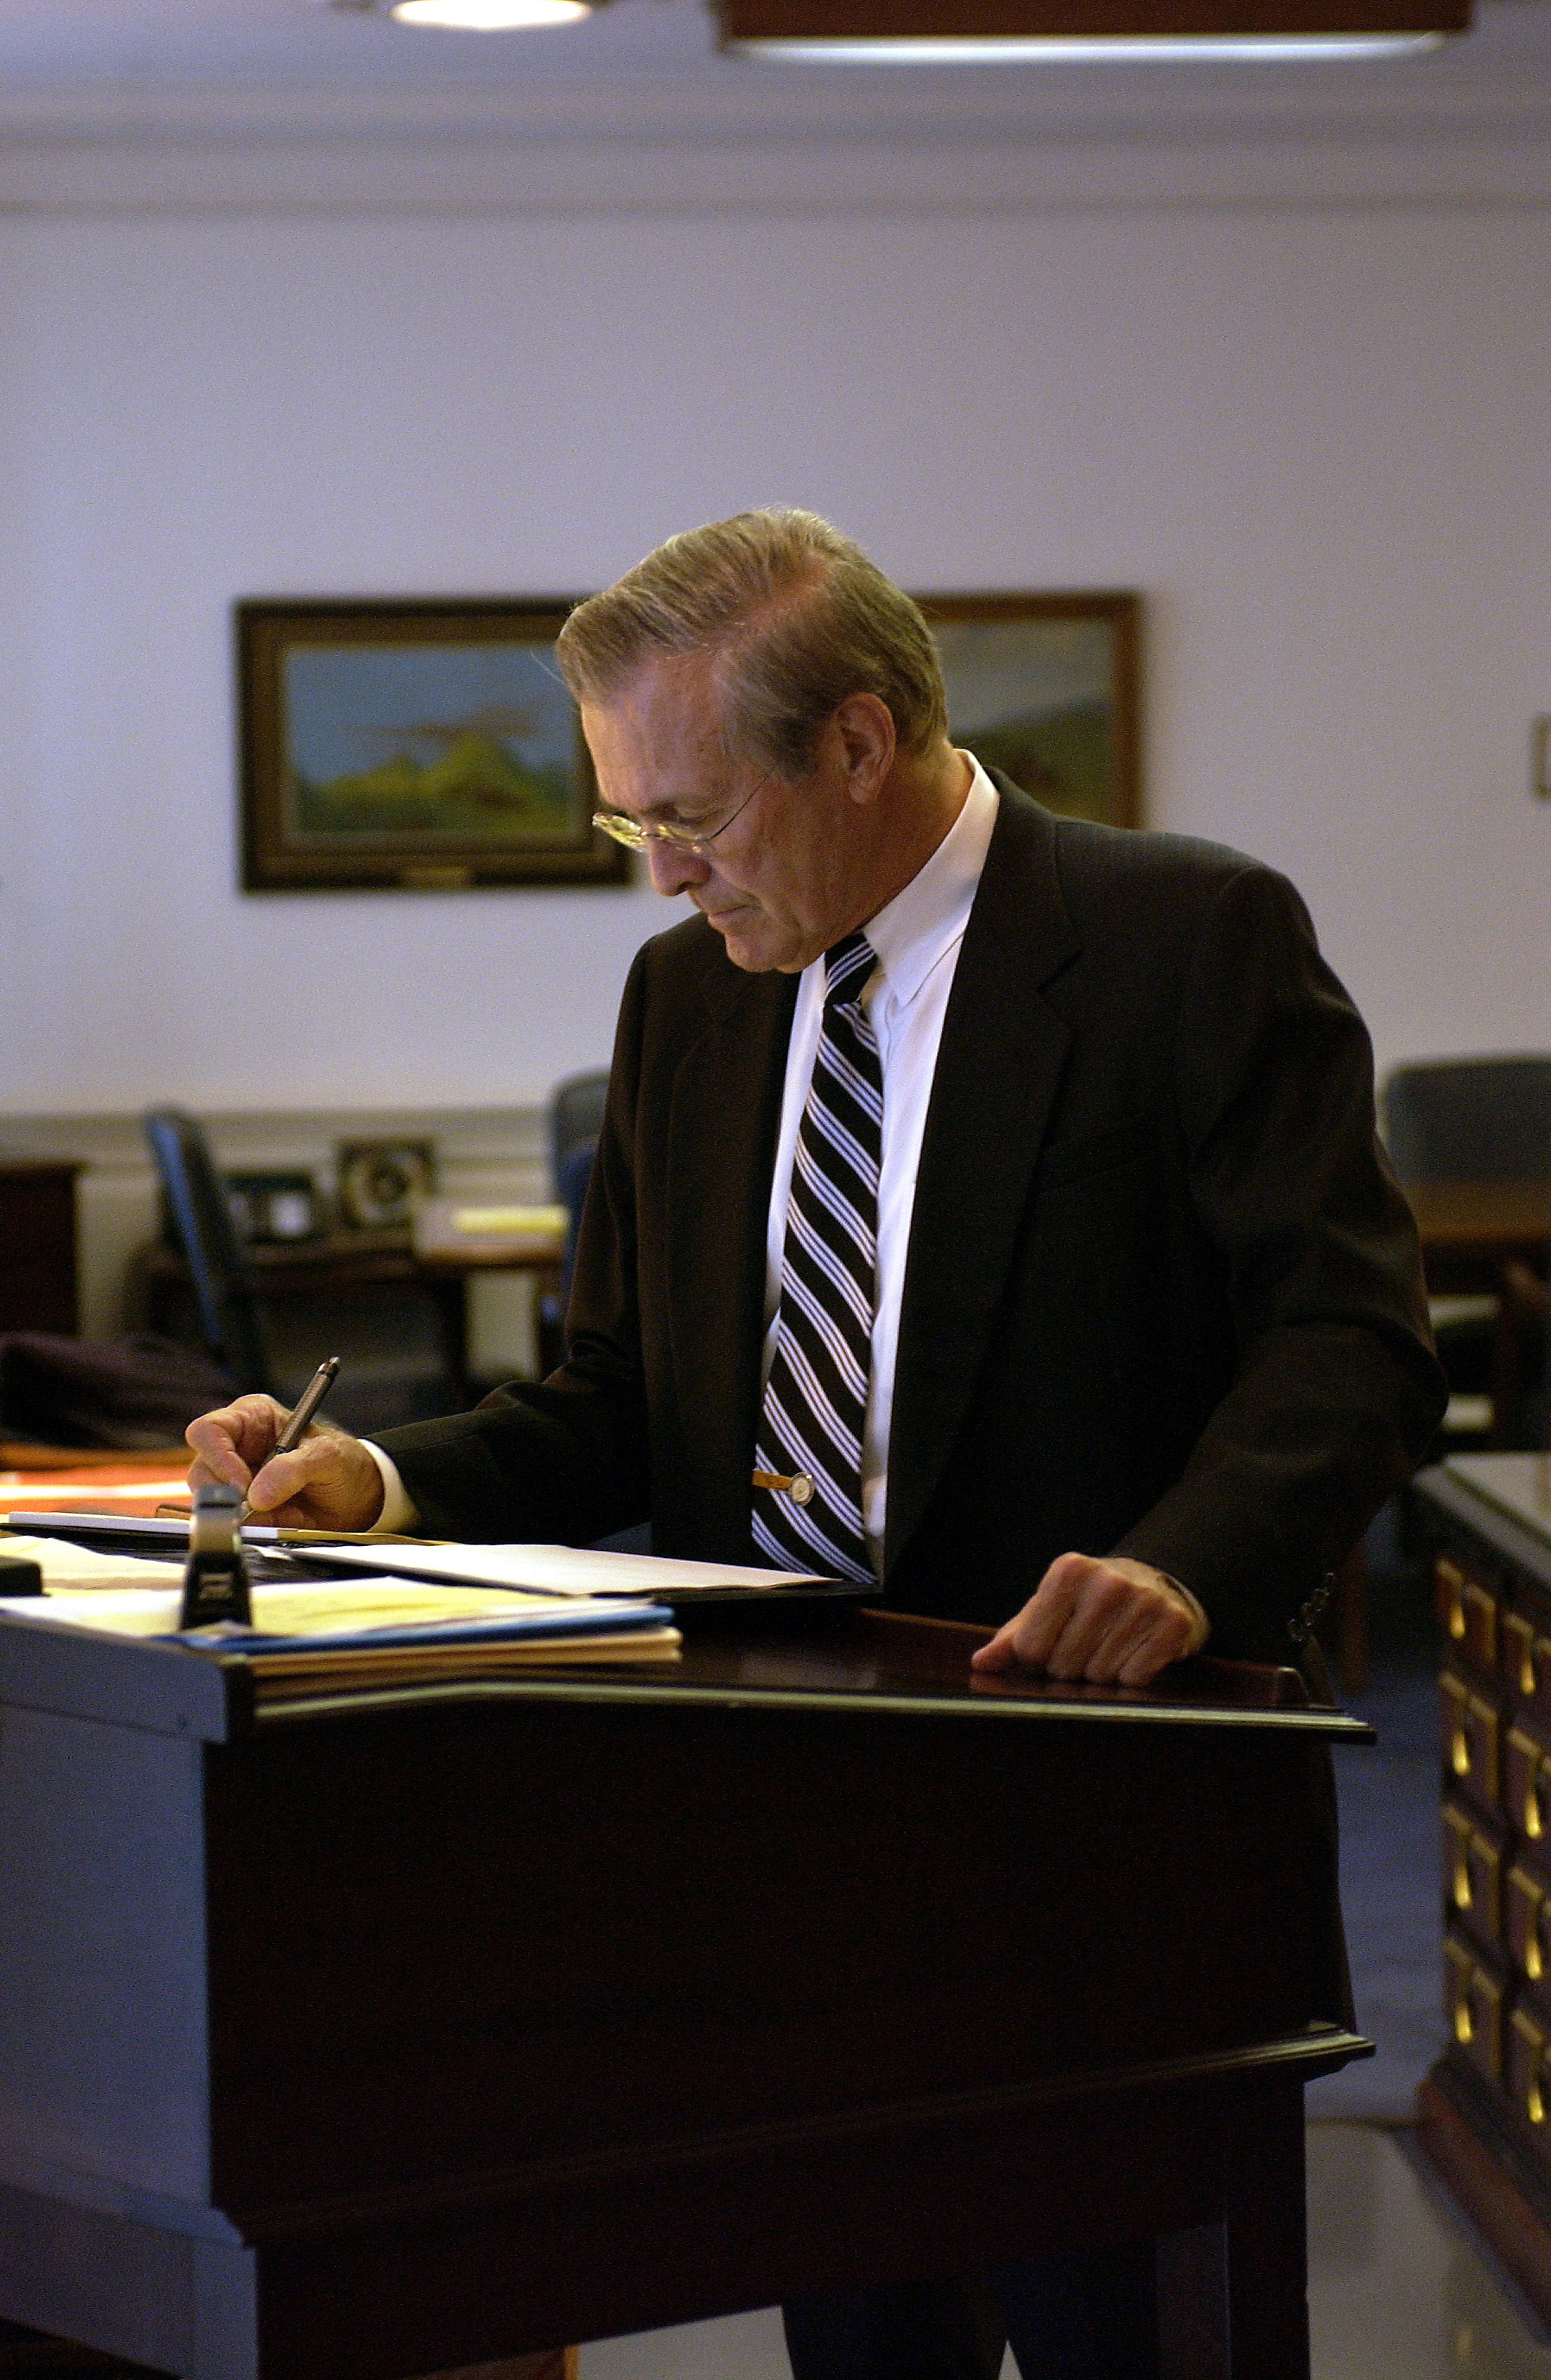 File:Donald H. Rumsfeld works at a stand-up desk.jpg - Wikimedia Commons